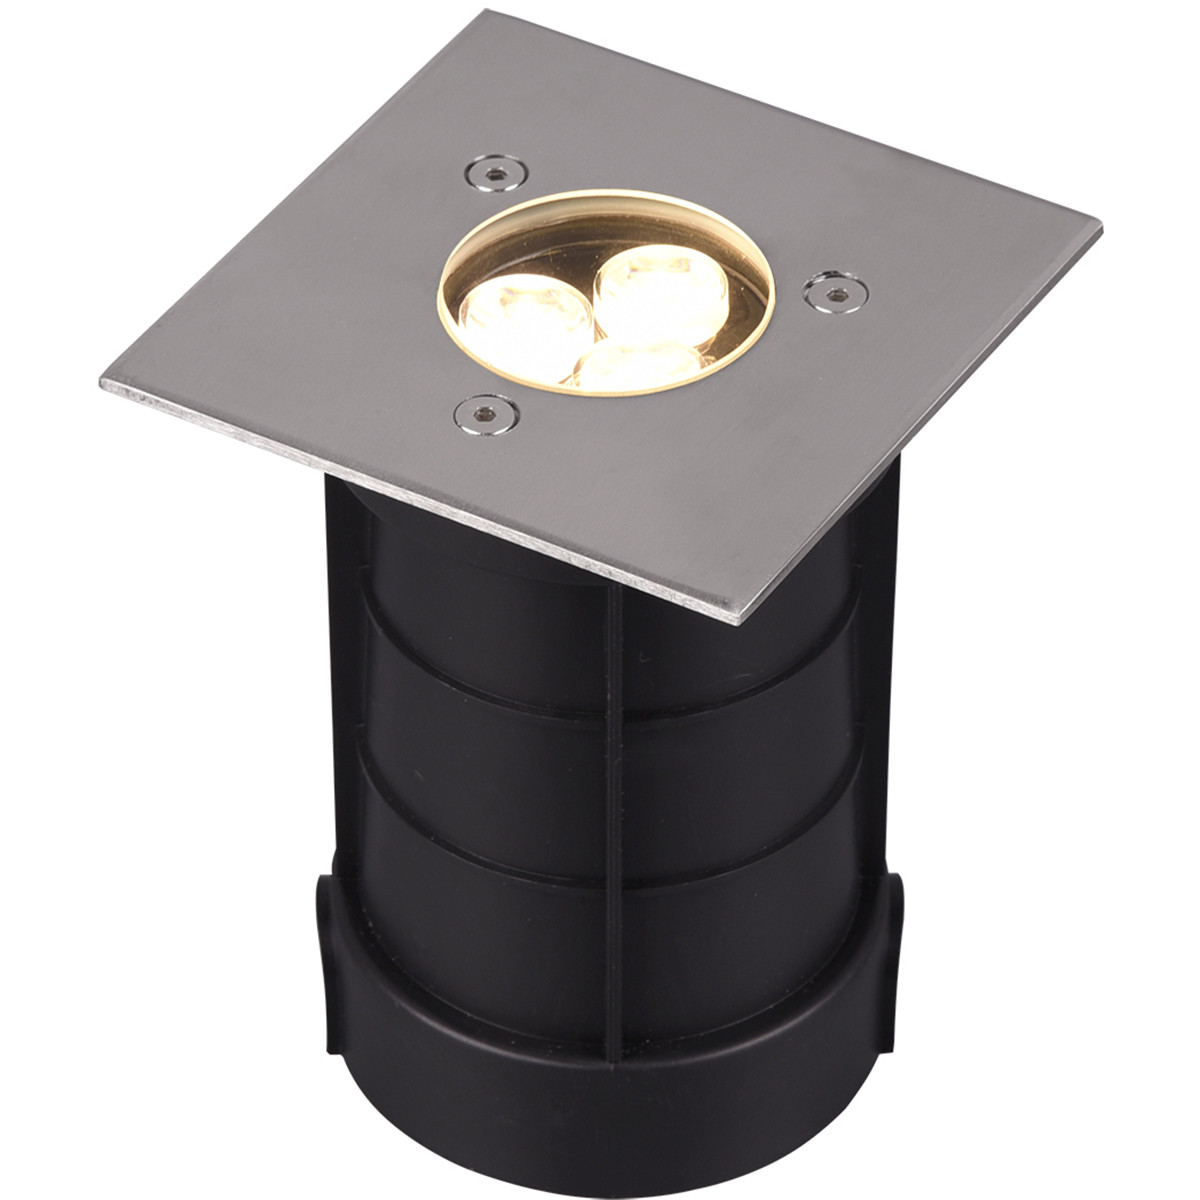 LED Grondspot - Trion Baliyi - Inbouw Vierkant - 3W - Waterdicht IP65 - Warm Wit 3000K - Mat Nikkel